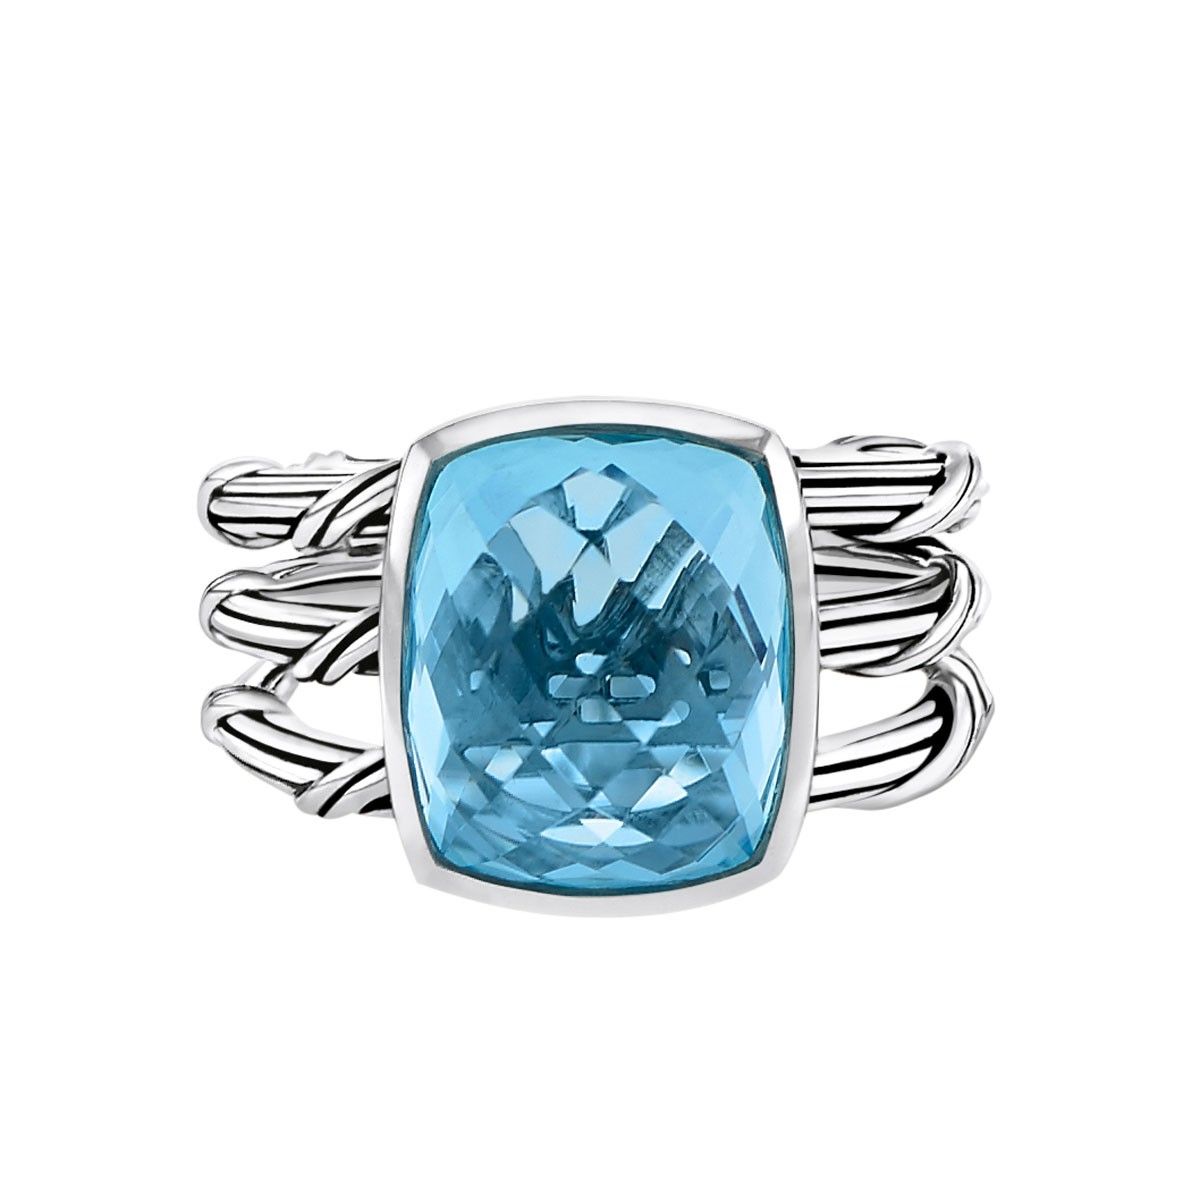 Fantasies Blue Topaz 3 Row Cocktail Ring in sterling silver